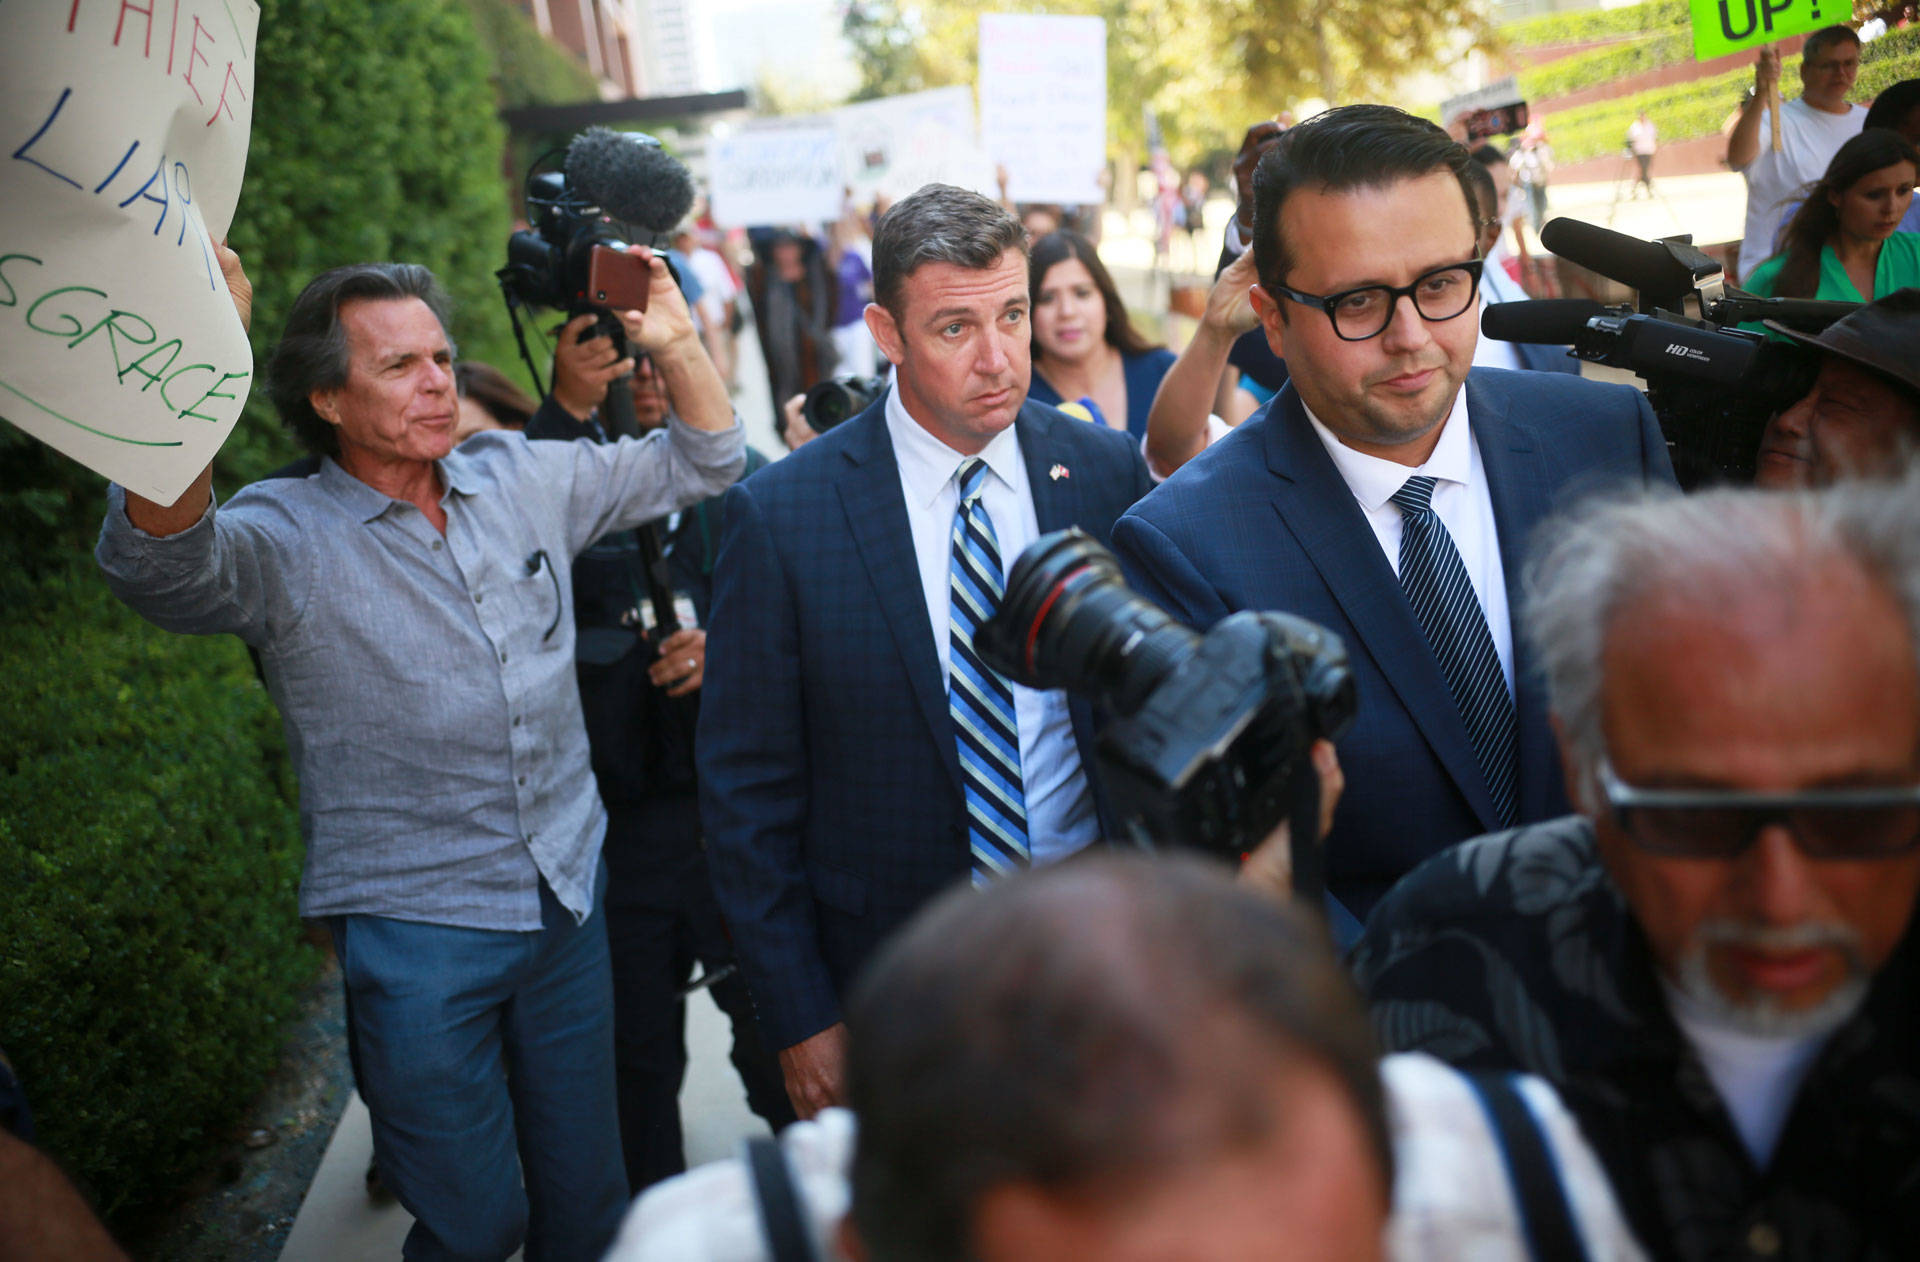 Congressman Duncan Hunter walks out of the San Diego federal courthouse after an arraignment hearing on Thursday, Aug. 23, 2018. Sandy Huffaker/Getty Images